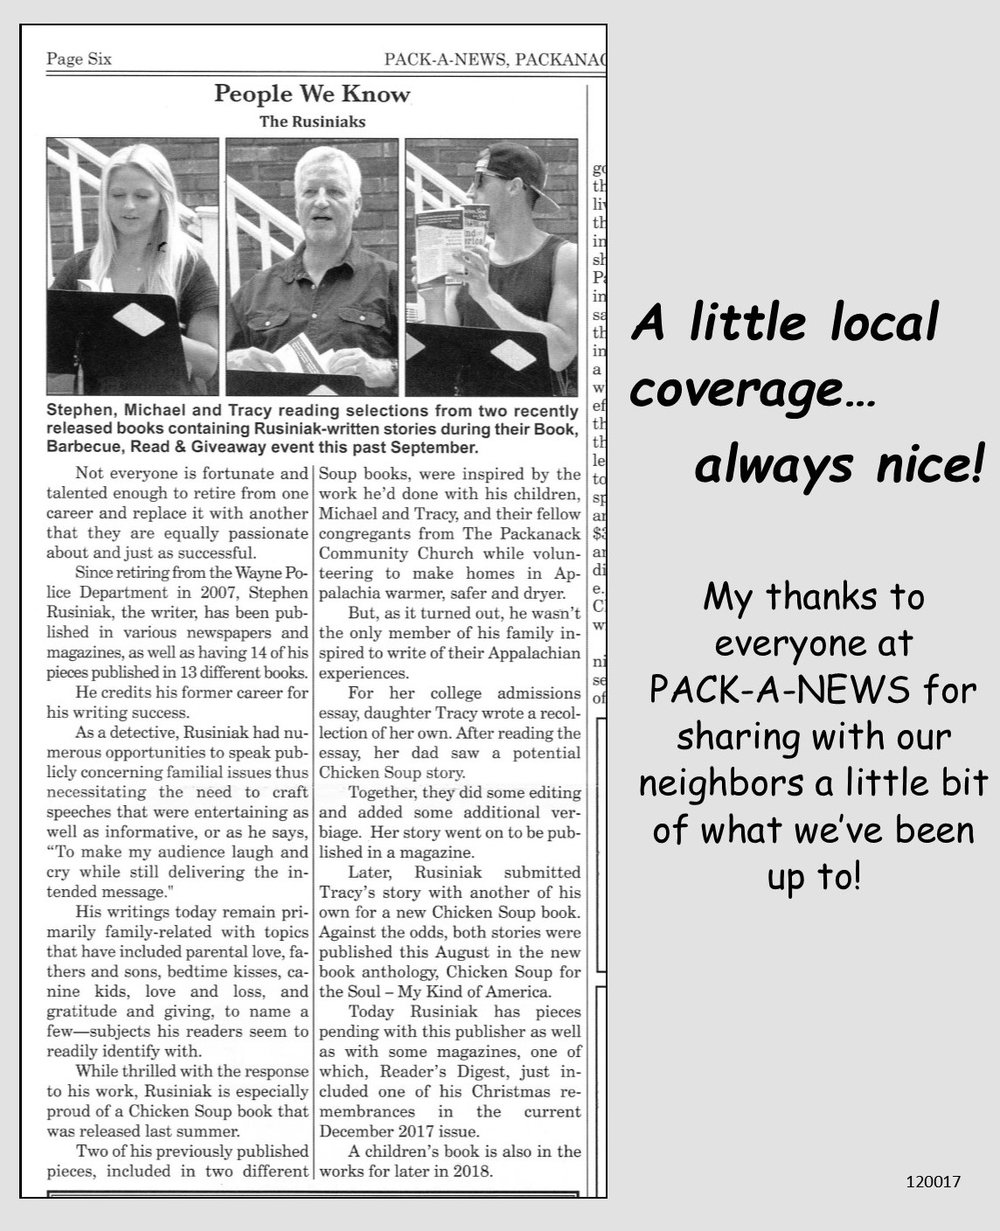 Pack-A-News article 120017.jpg